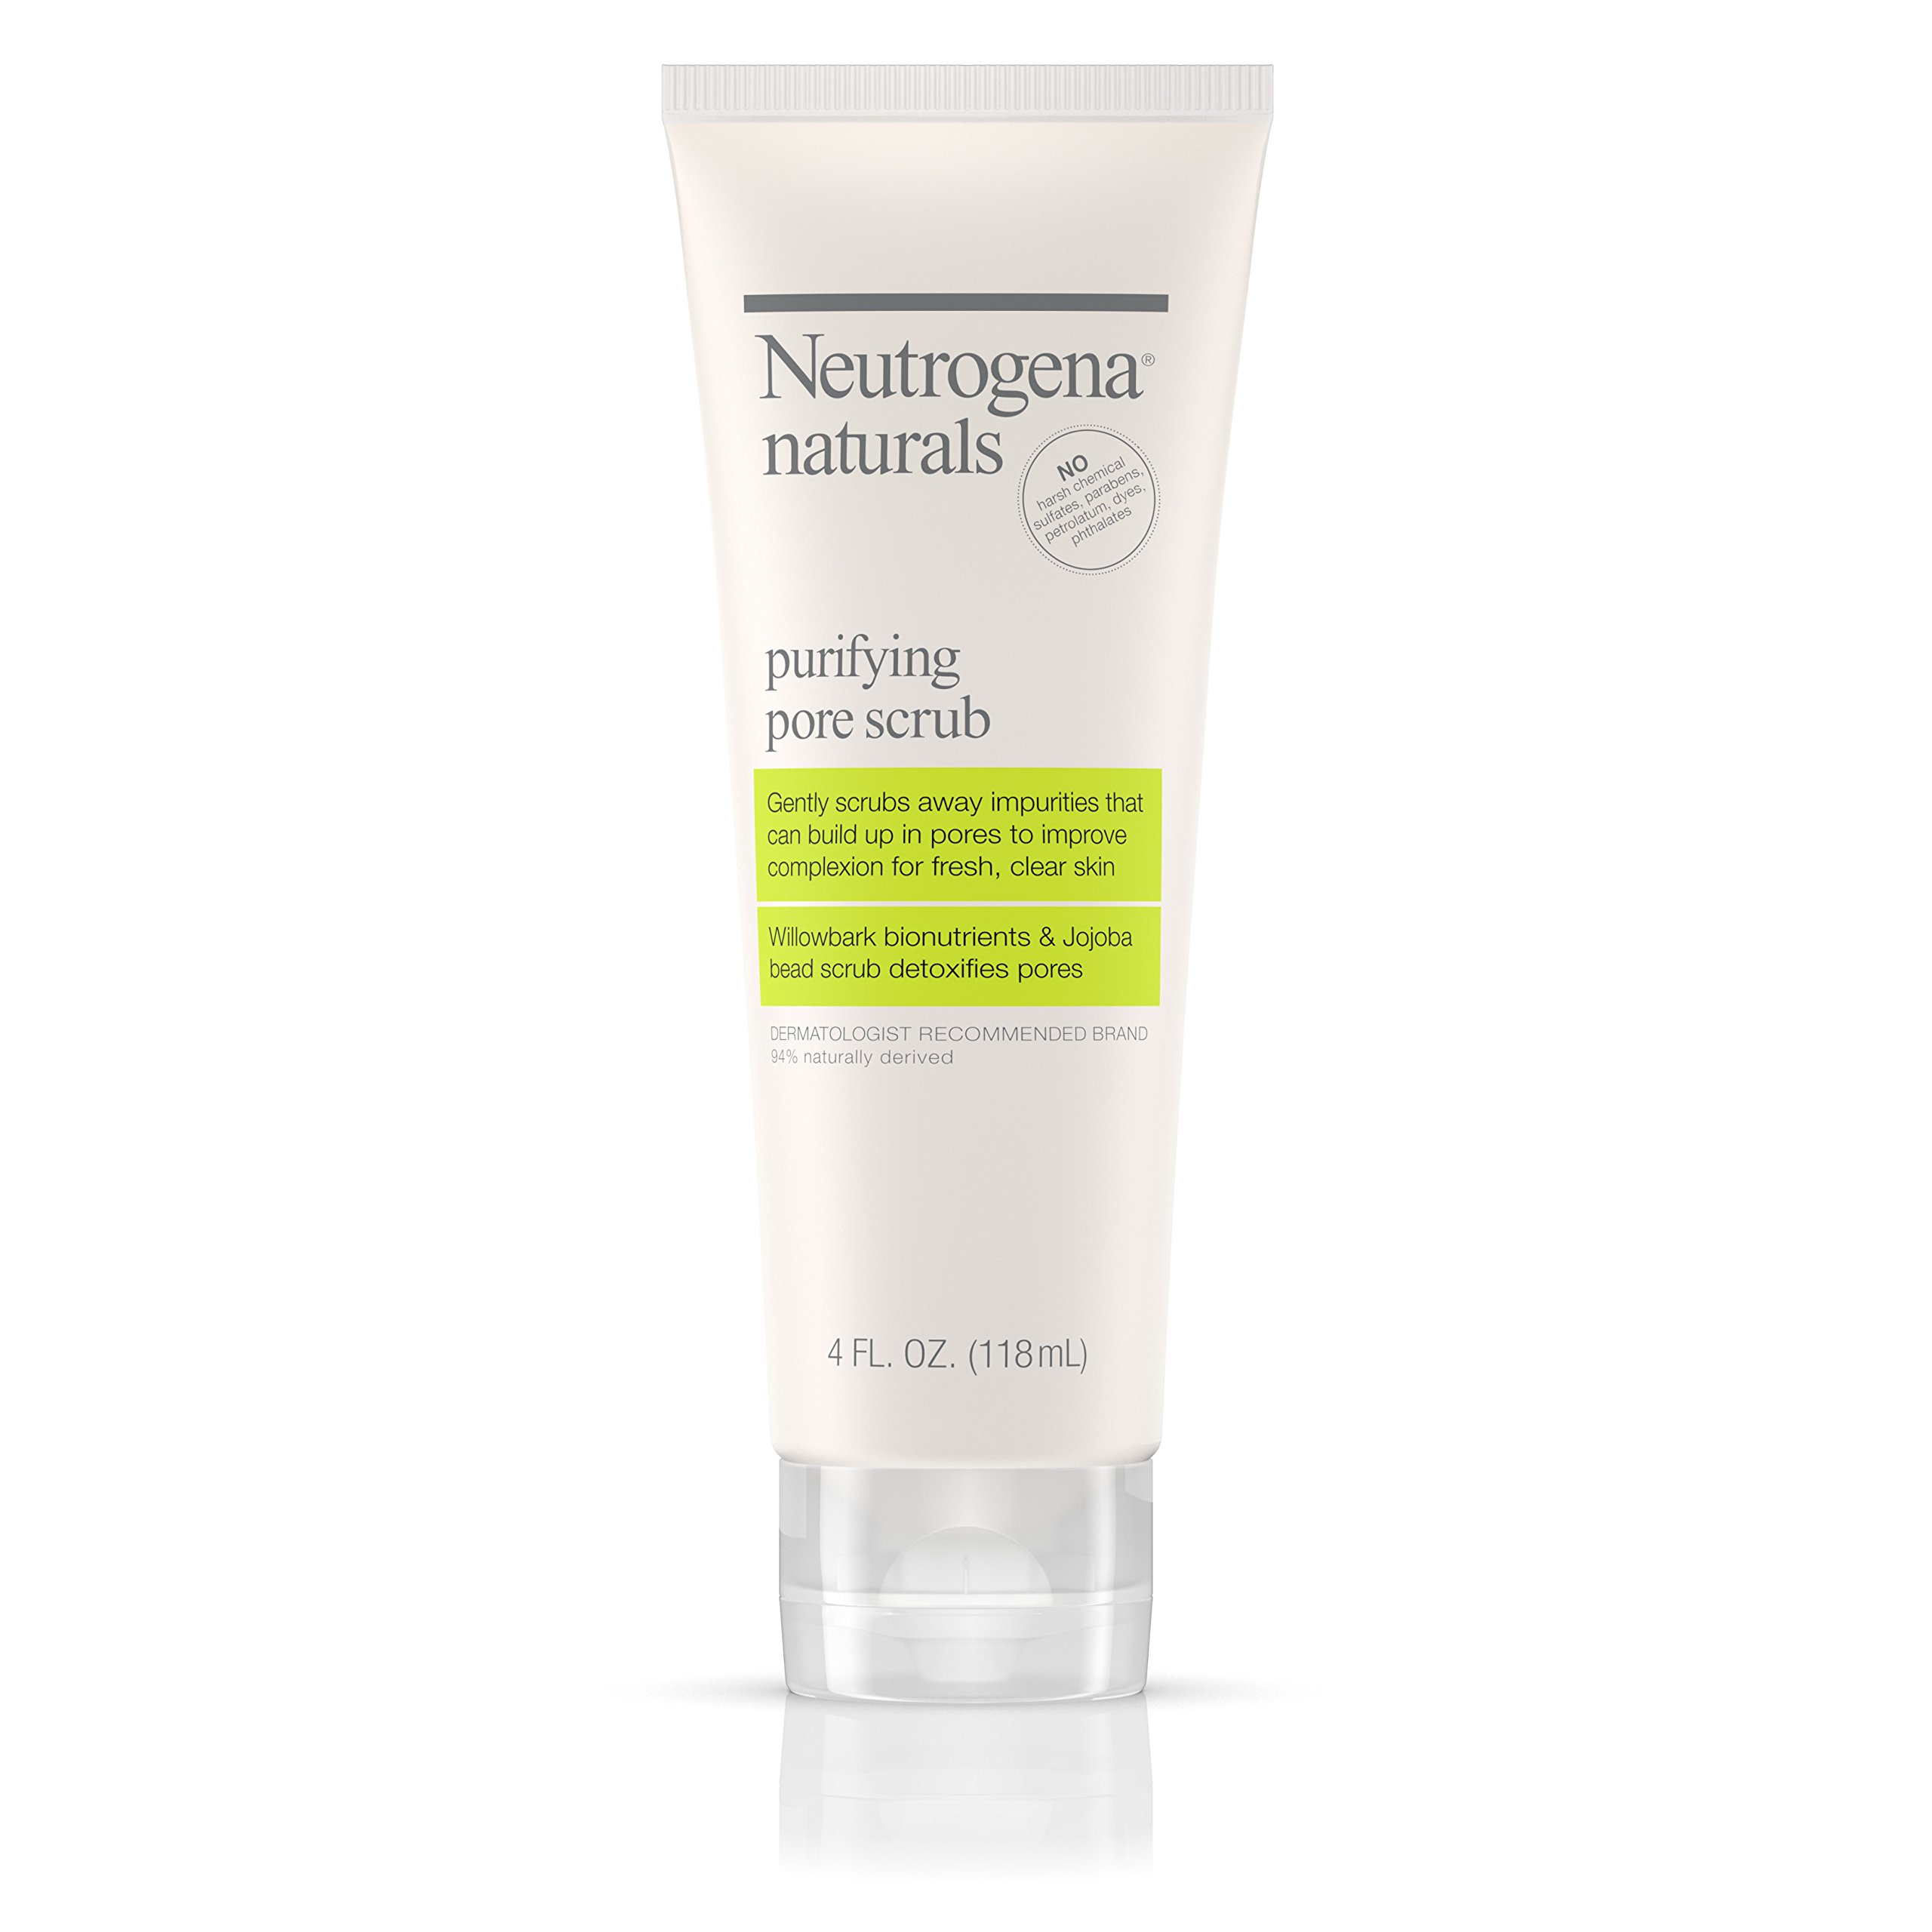 Neutrogena Naturals Purifying Daily Pore Facial Scrub with Natural Salicylic Acid from Willowbark Bionutrients, Hypoallergenic, Non-Comedogenic & Sulfate-, Paraben- & Phthalate-Free, 4 fl. oz